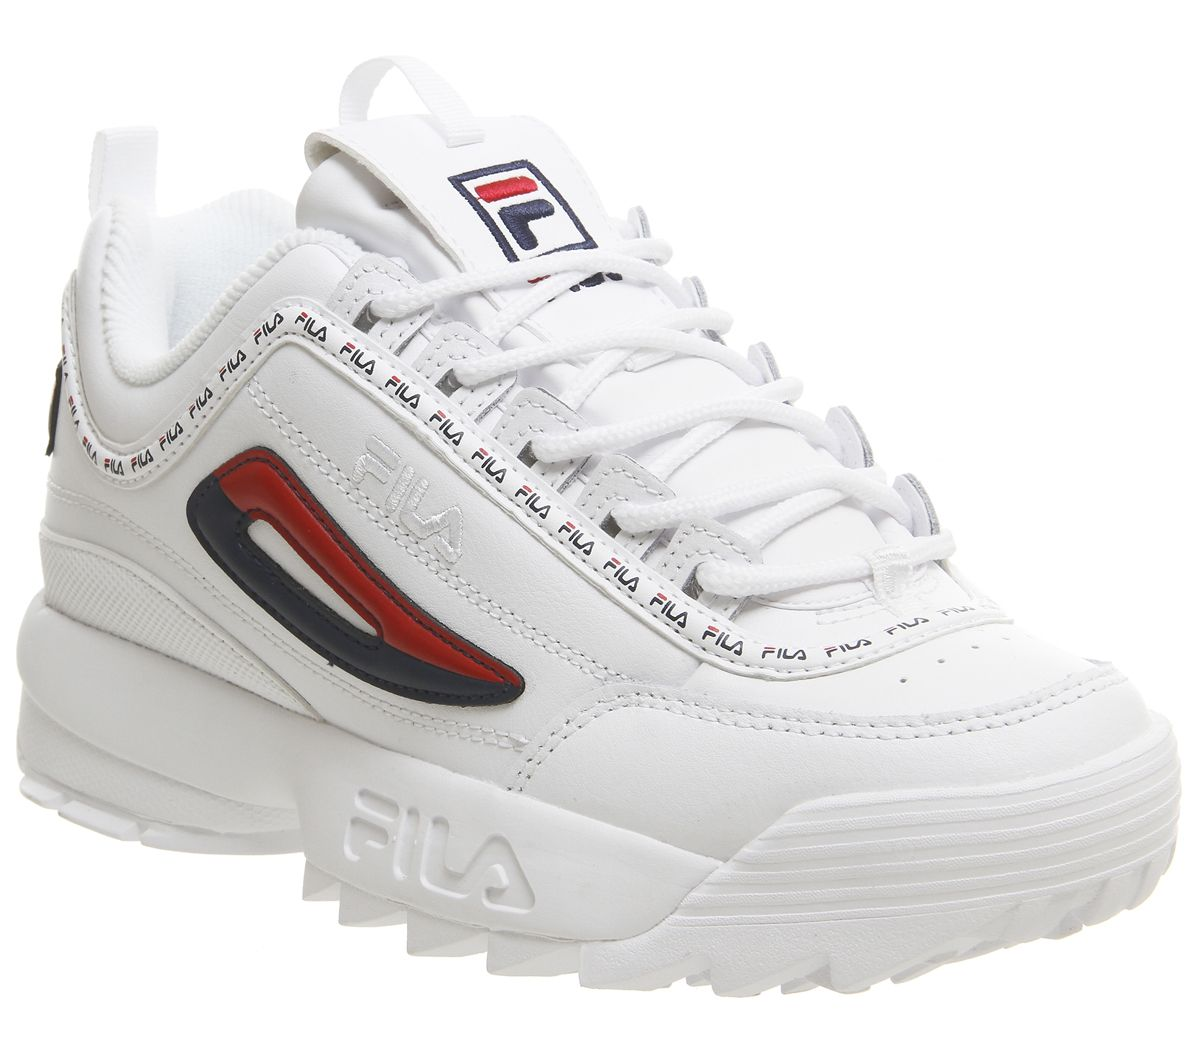 huge selection of 2c04a ecefc Fila Disruptor II Trainers White Repeat - Hers trainers